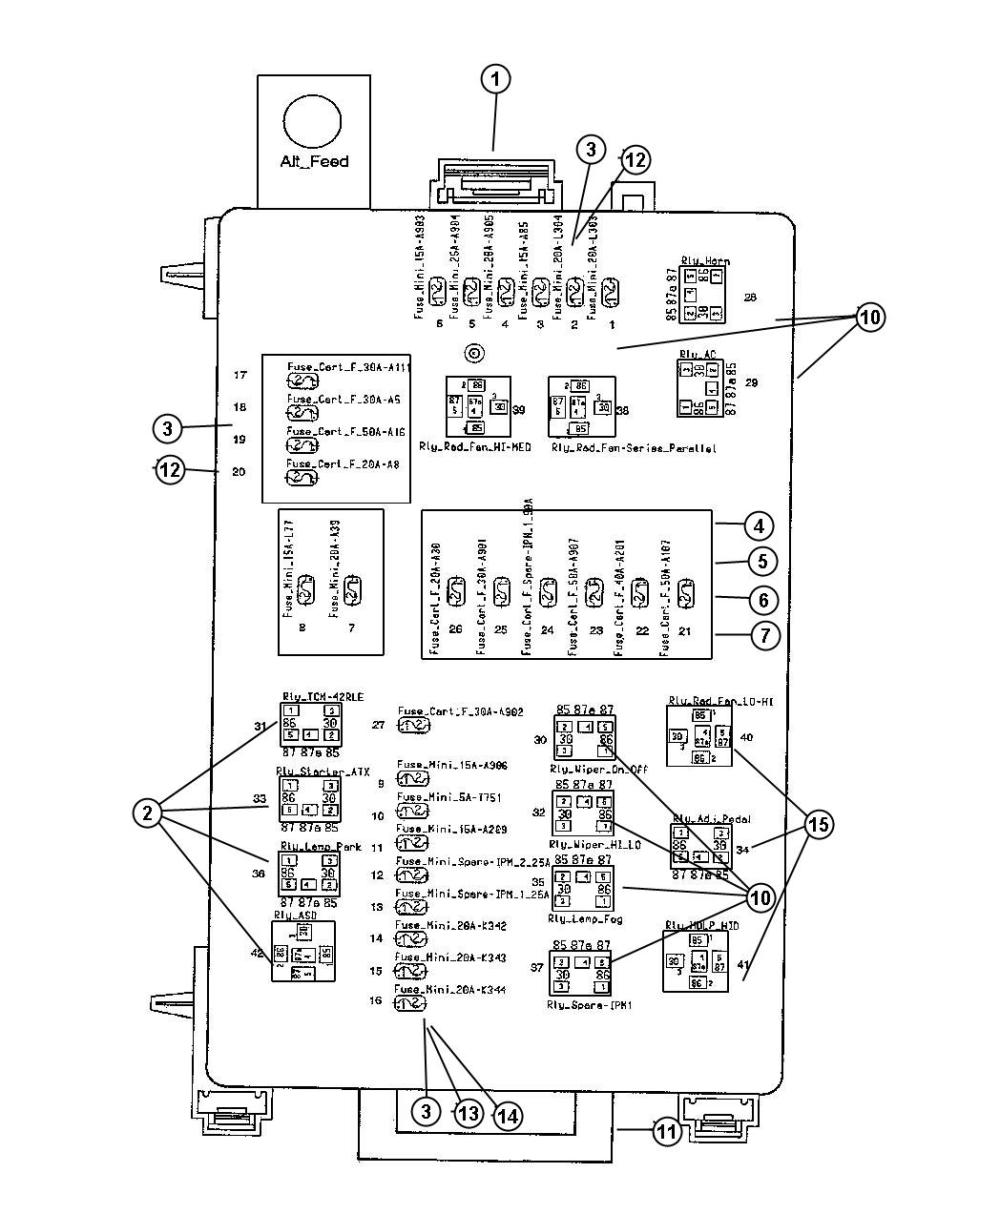 medium resolution of h3 fuse diagram wiring diagram article reviewfuse box diagram for 2005 dodge magnum advance wiring diagram05